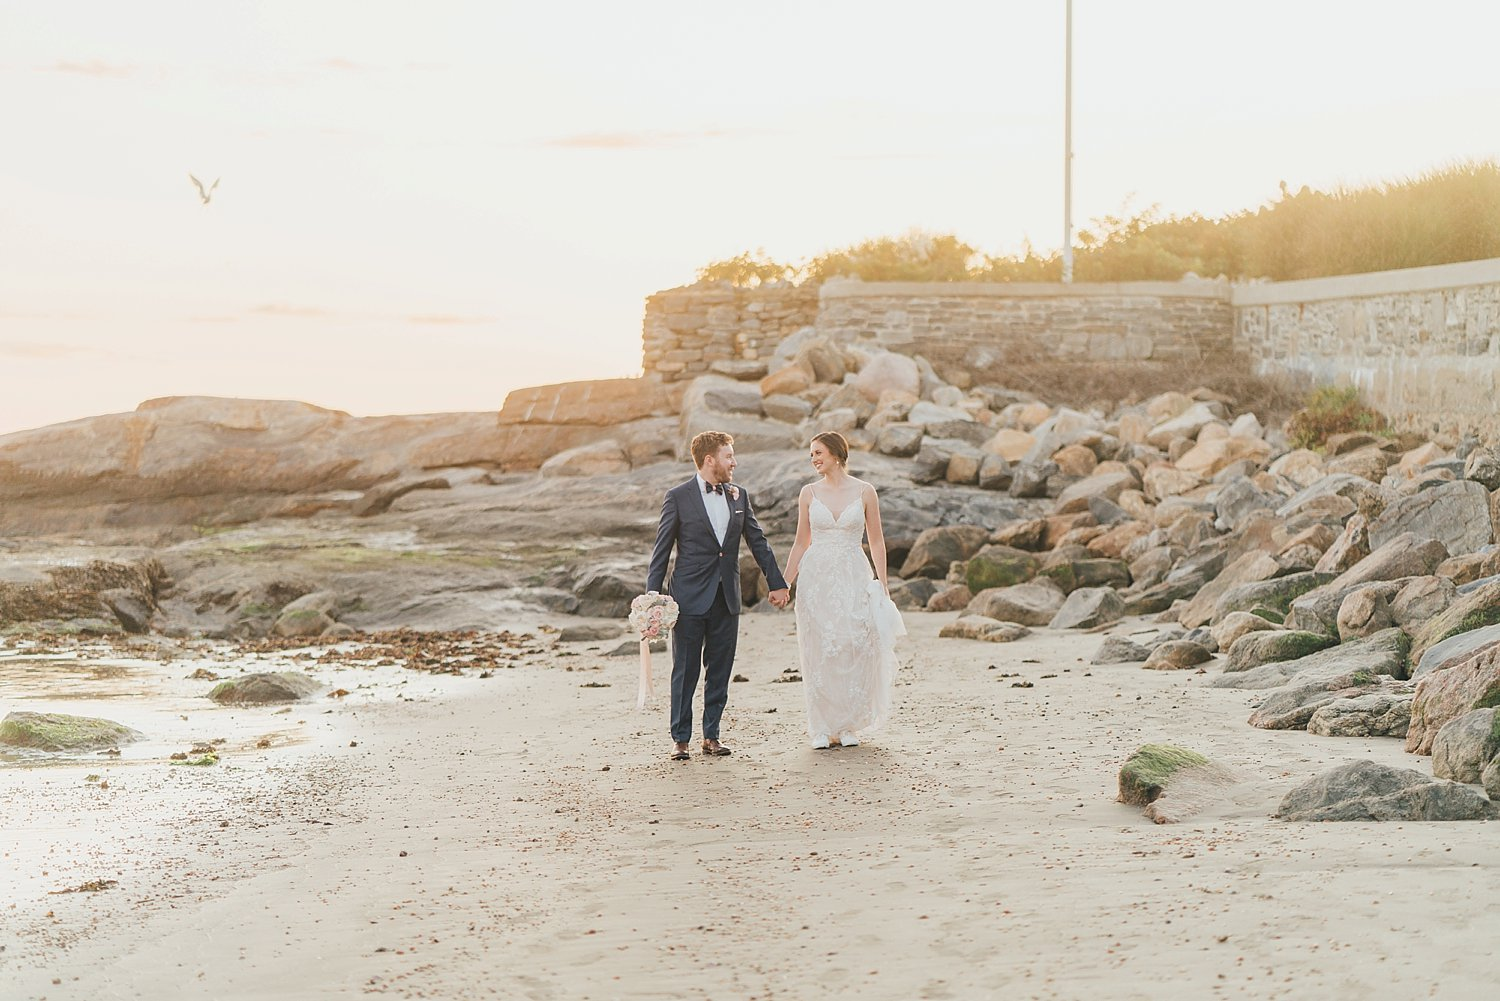 nyc-wedding-photography-nj-tri-state-cinematography-intothestory-by-moo-jae_0360.jpg